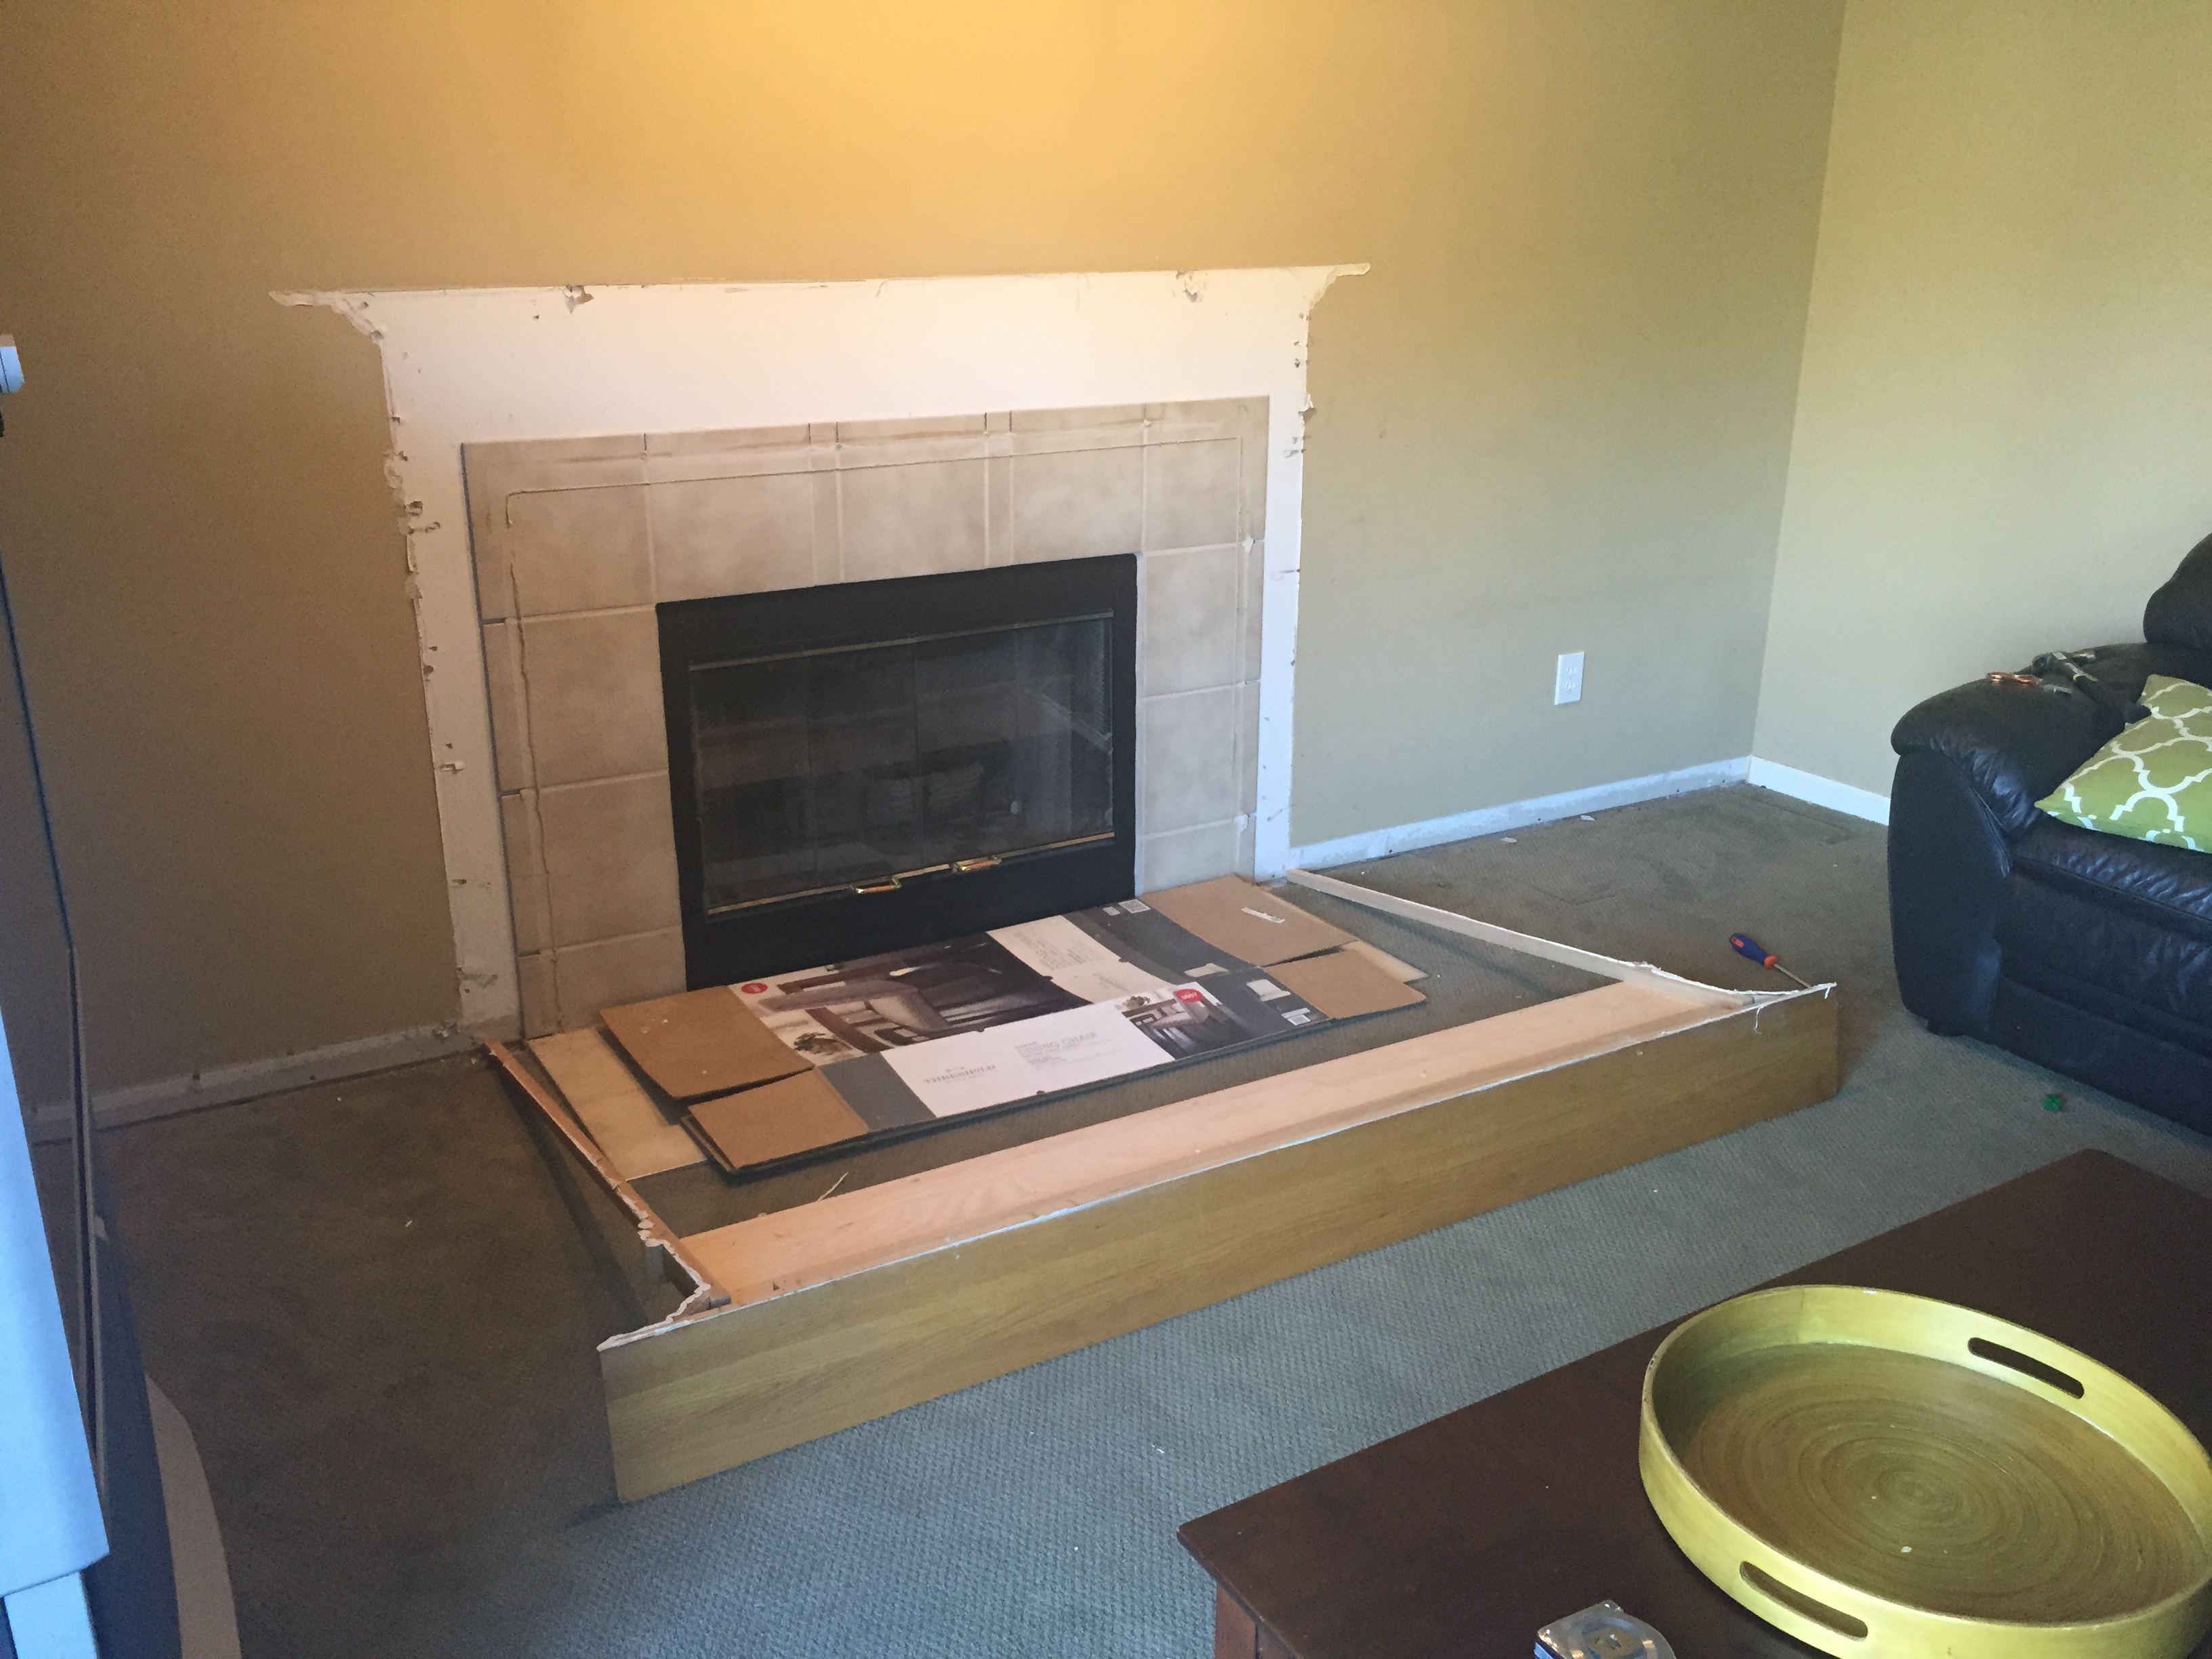 Next, I brought the 4 base cabinets in, placed 2 of them on each side of  the fireplace and worked out the measurements. I won't get into that here.